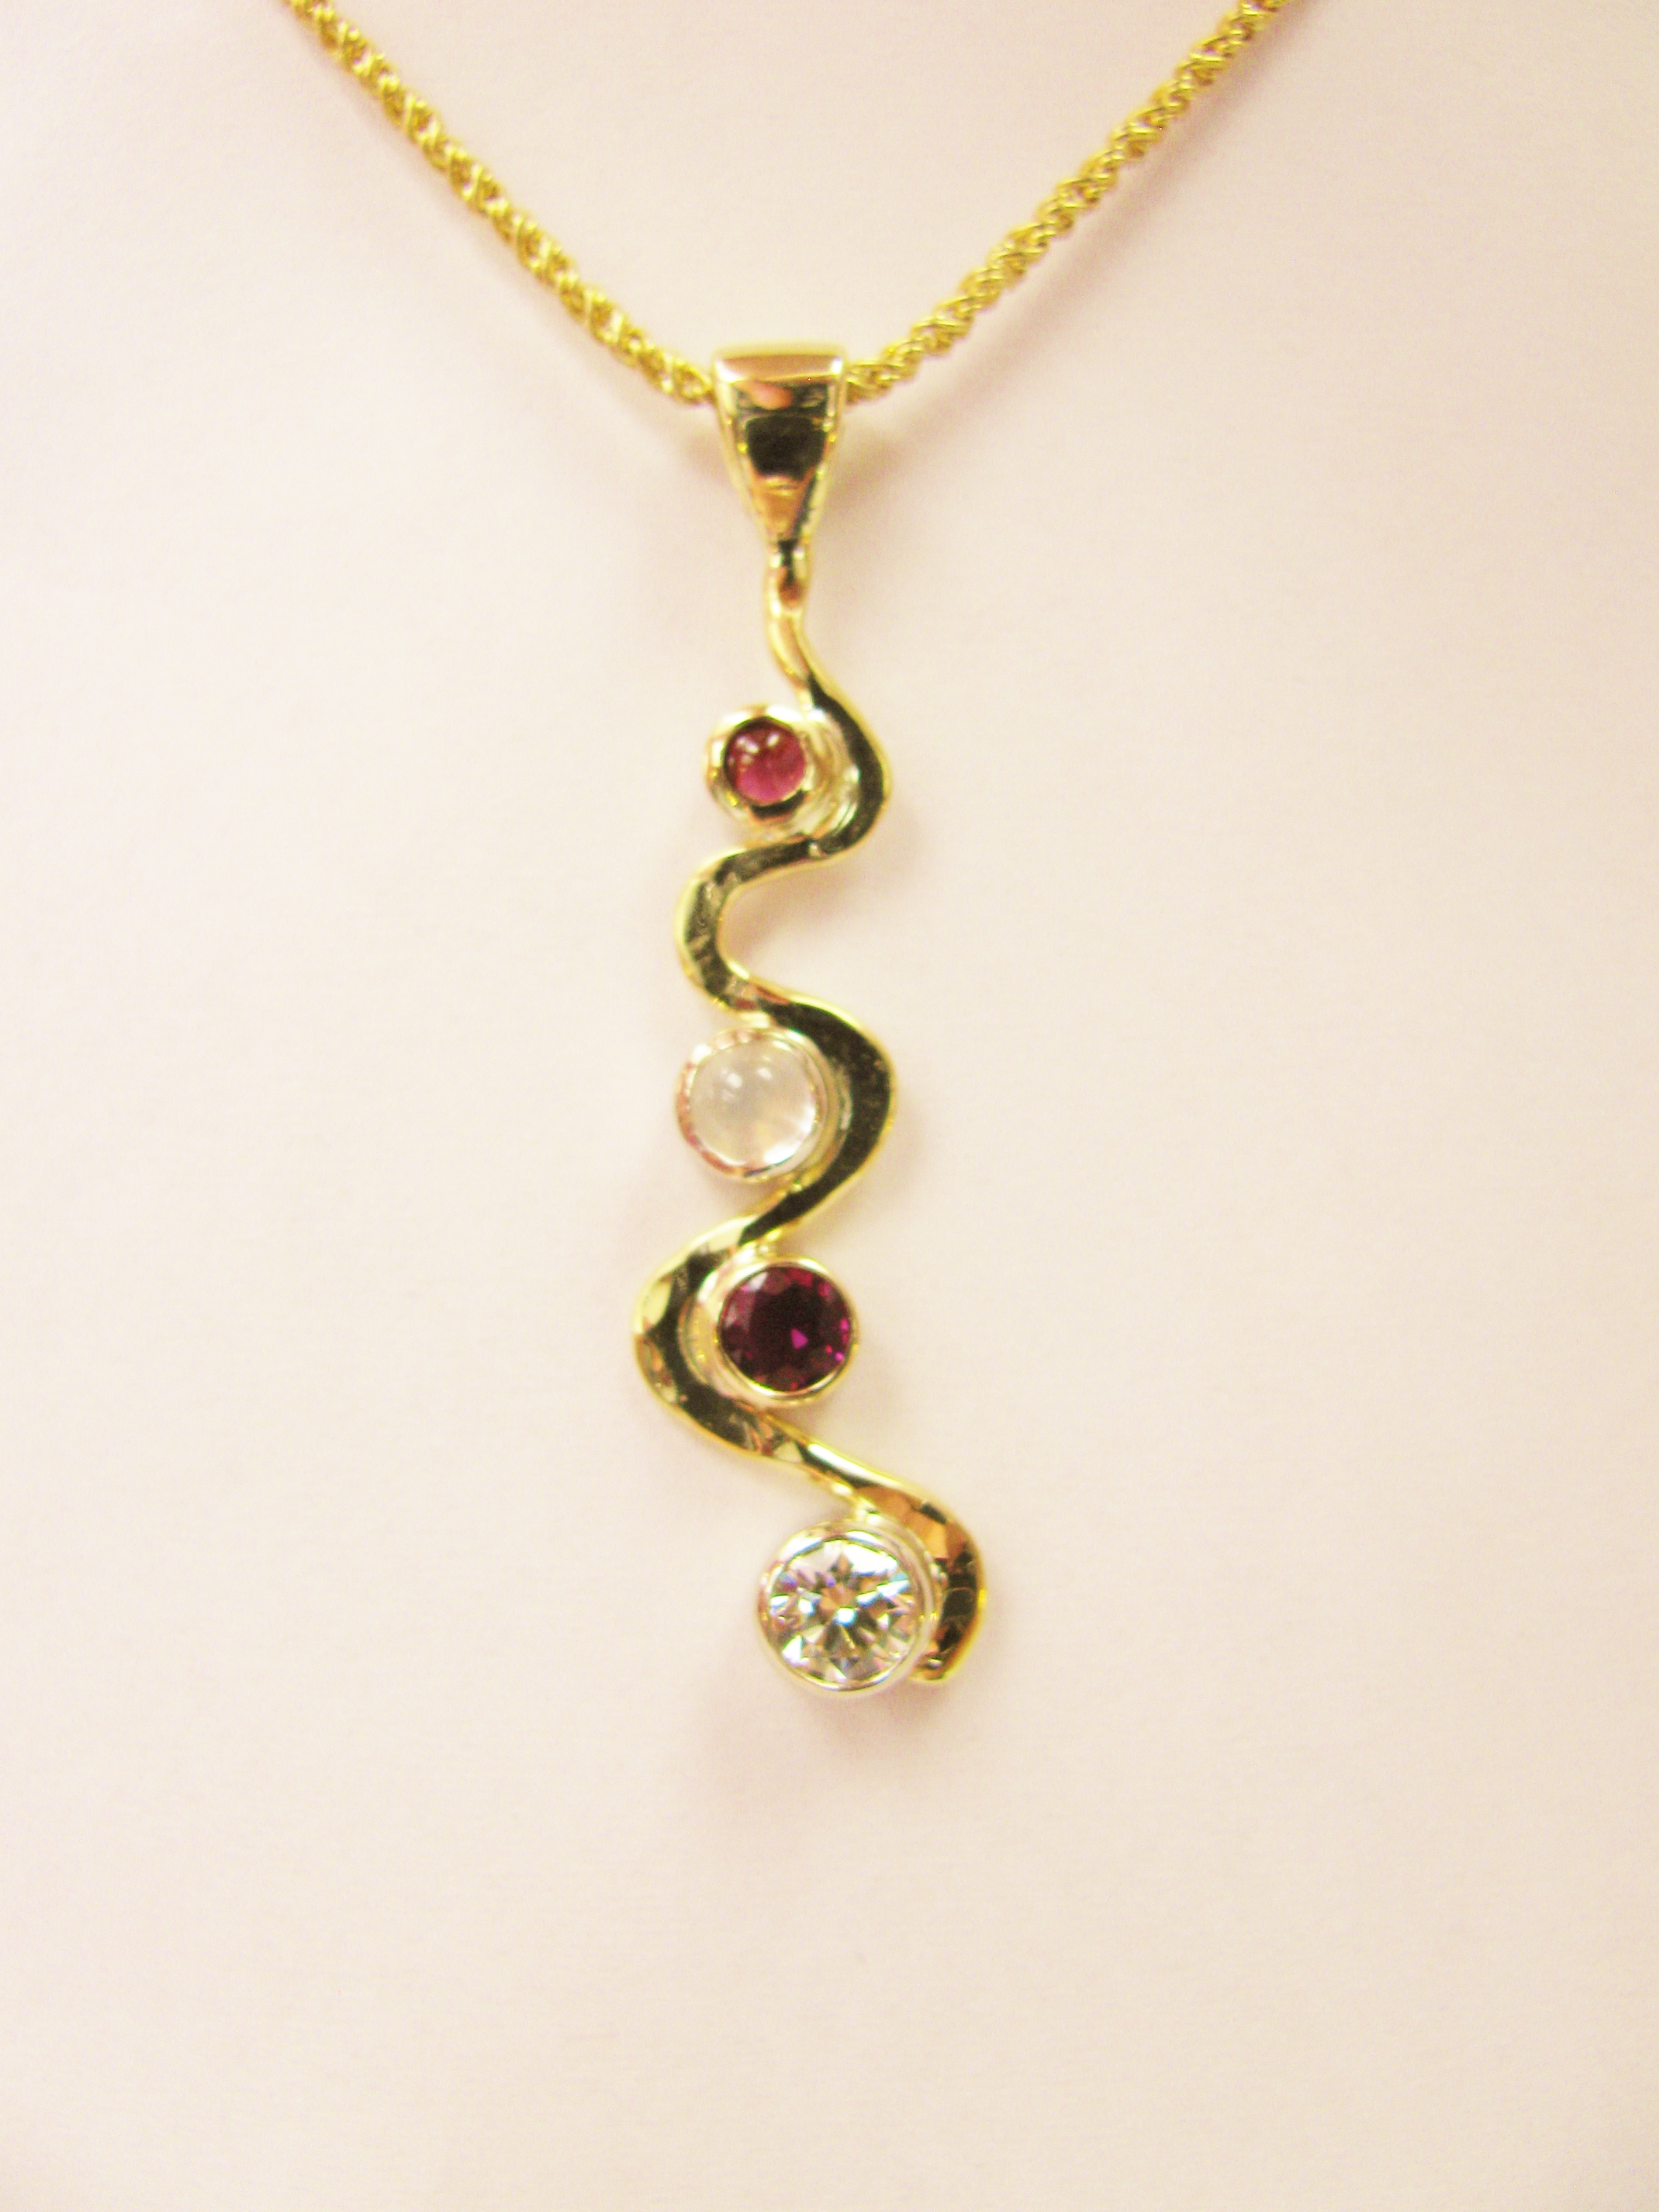 14kt Gold, ruby, diamond necklace